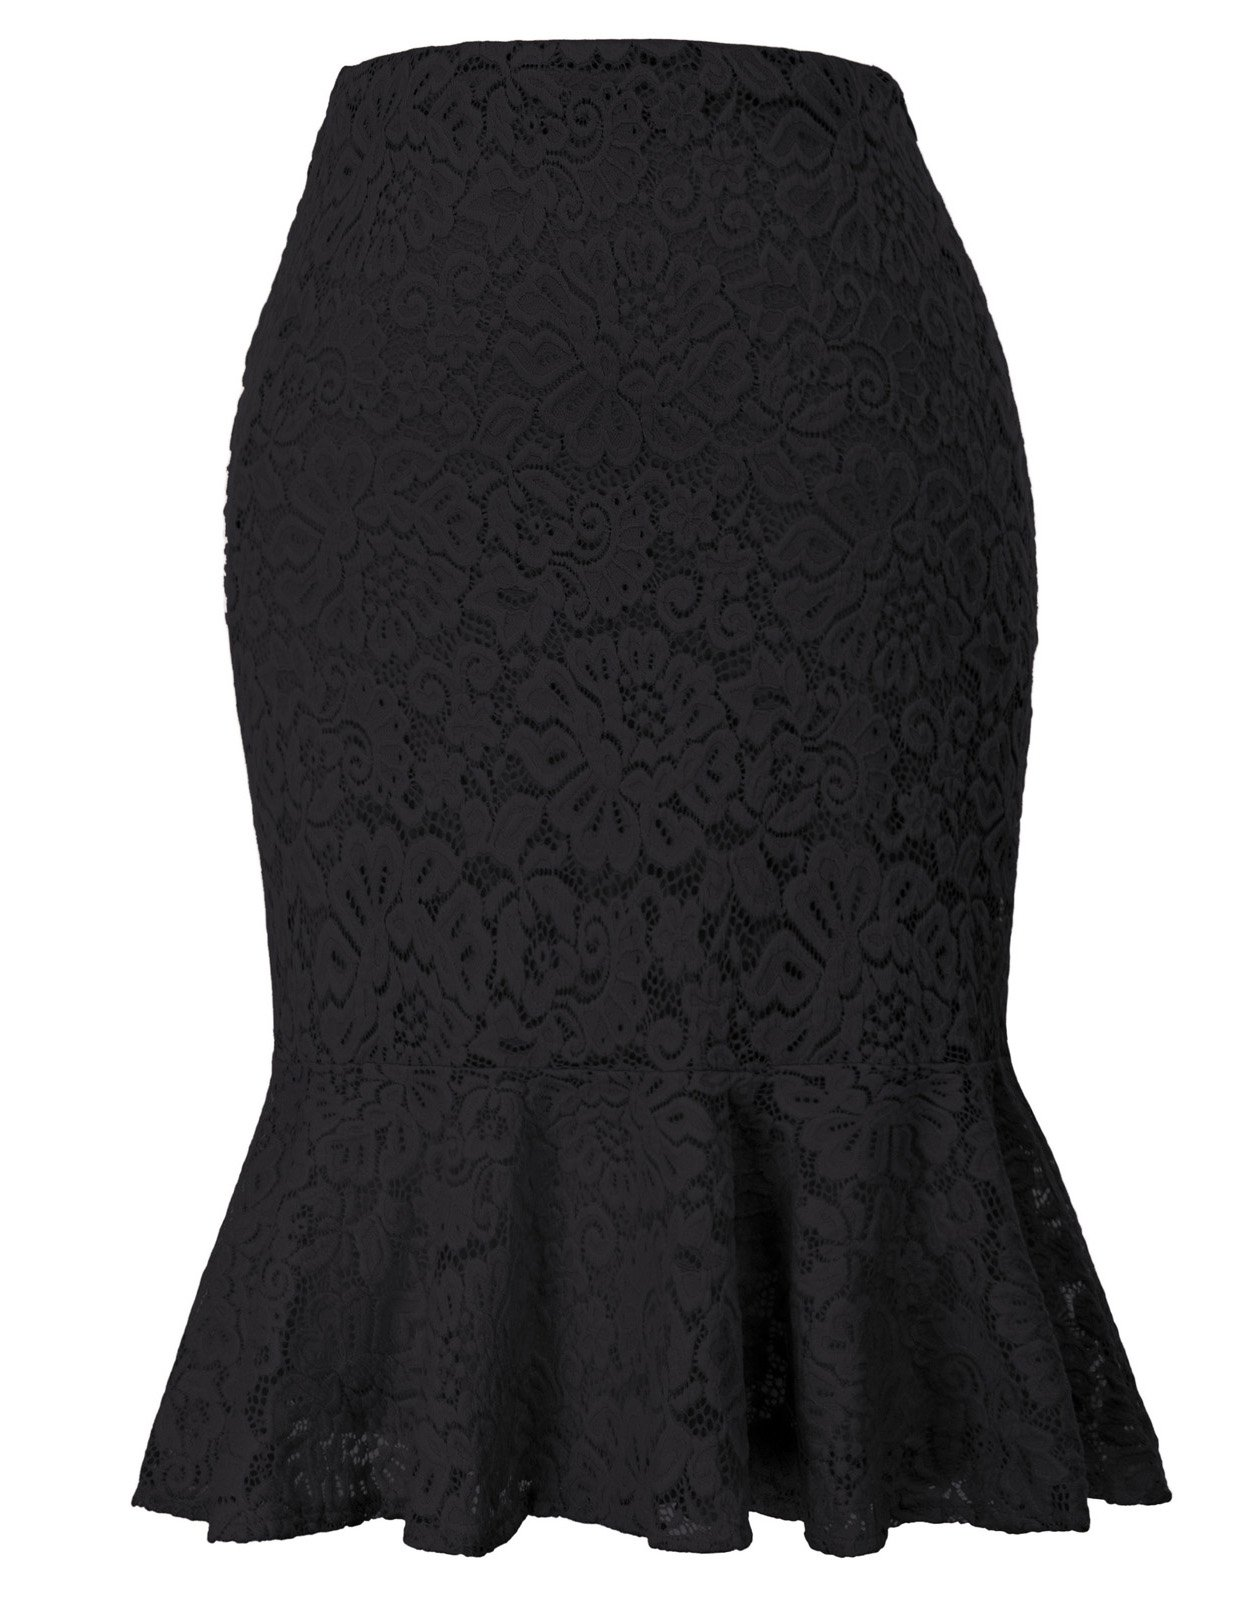 GRACE KARIN Women's Vintage Wear to Work Ruffle Lace Bodycon Mermaid Pencil Skirt Black M